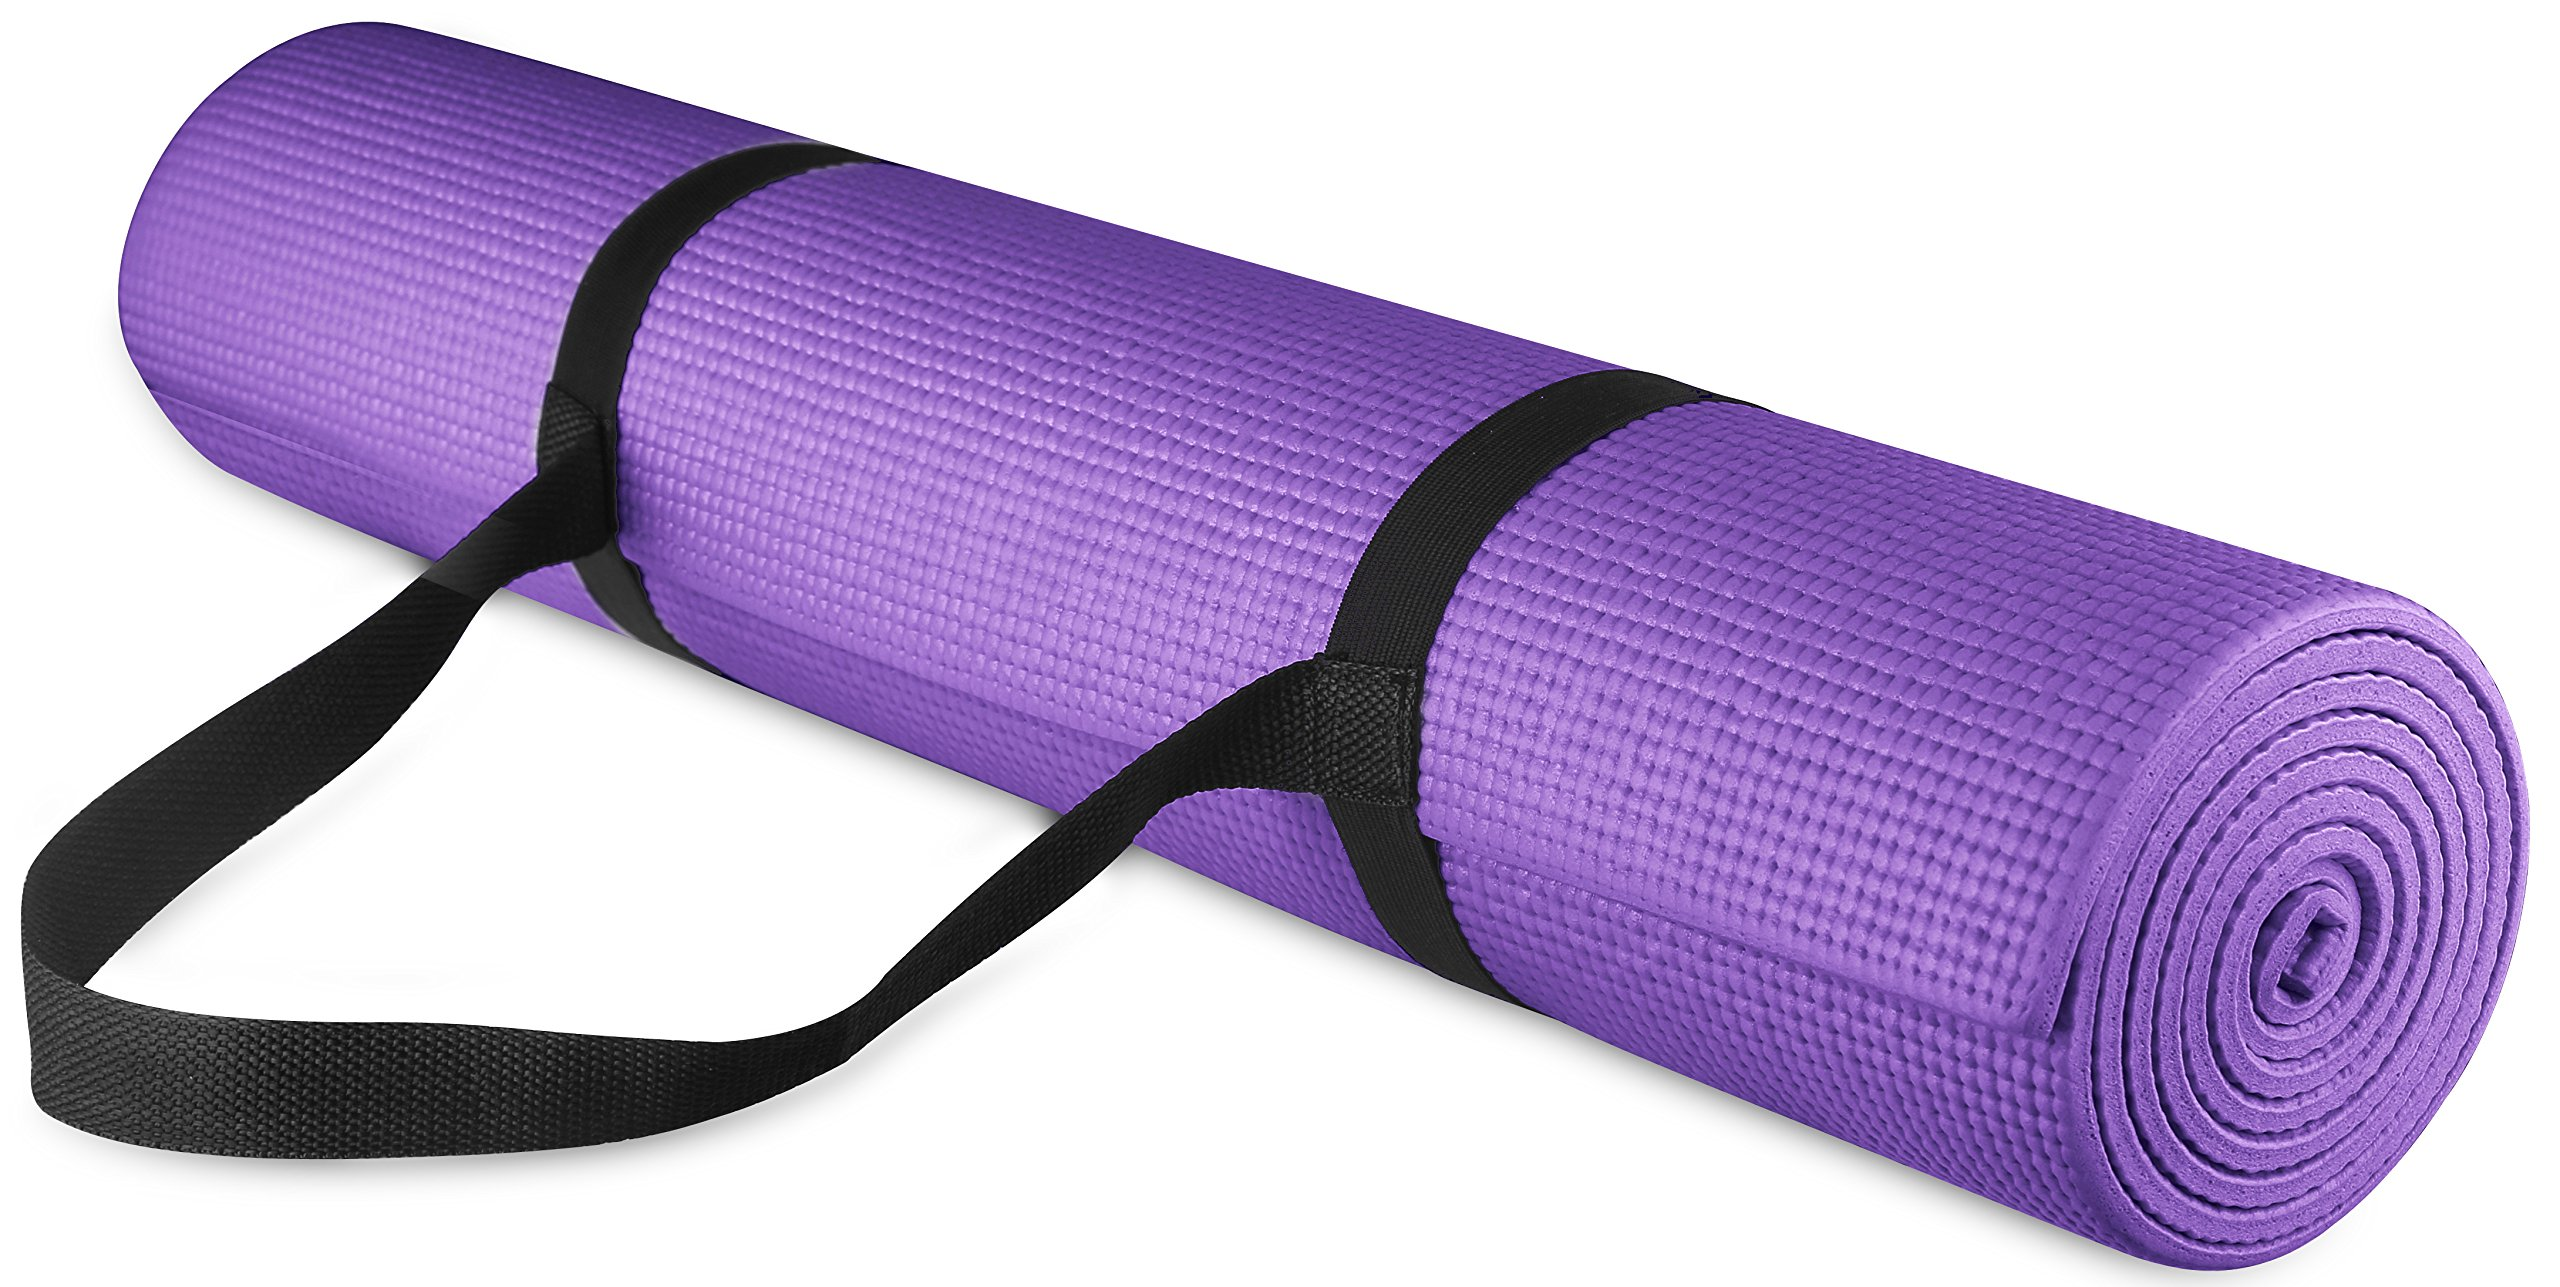 BalanceFrom GoYoga All Purpose High Density Non-Slip Exercise Yoga Mat with Carrying Strap, 1/4'', Purple by BalanceFrom